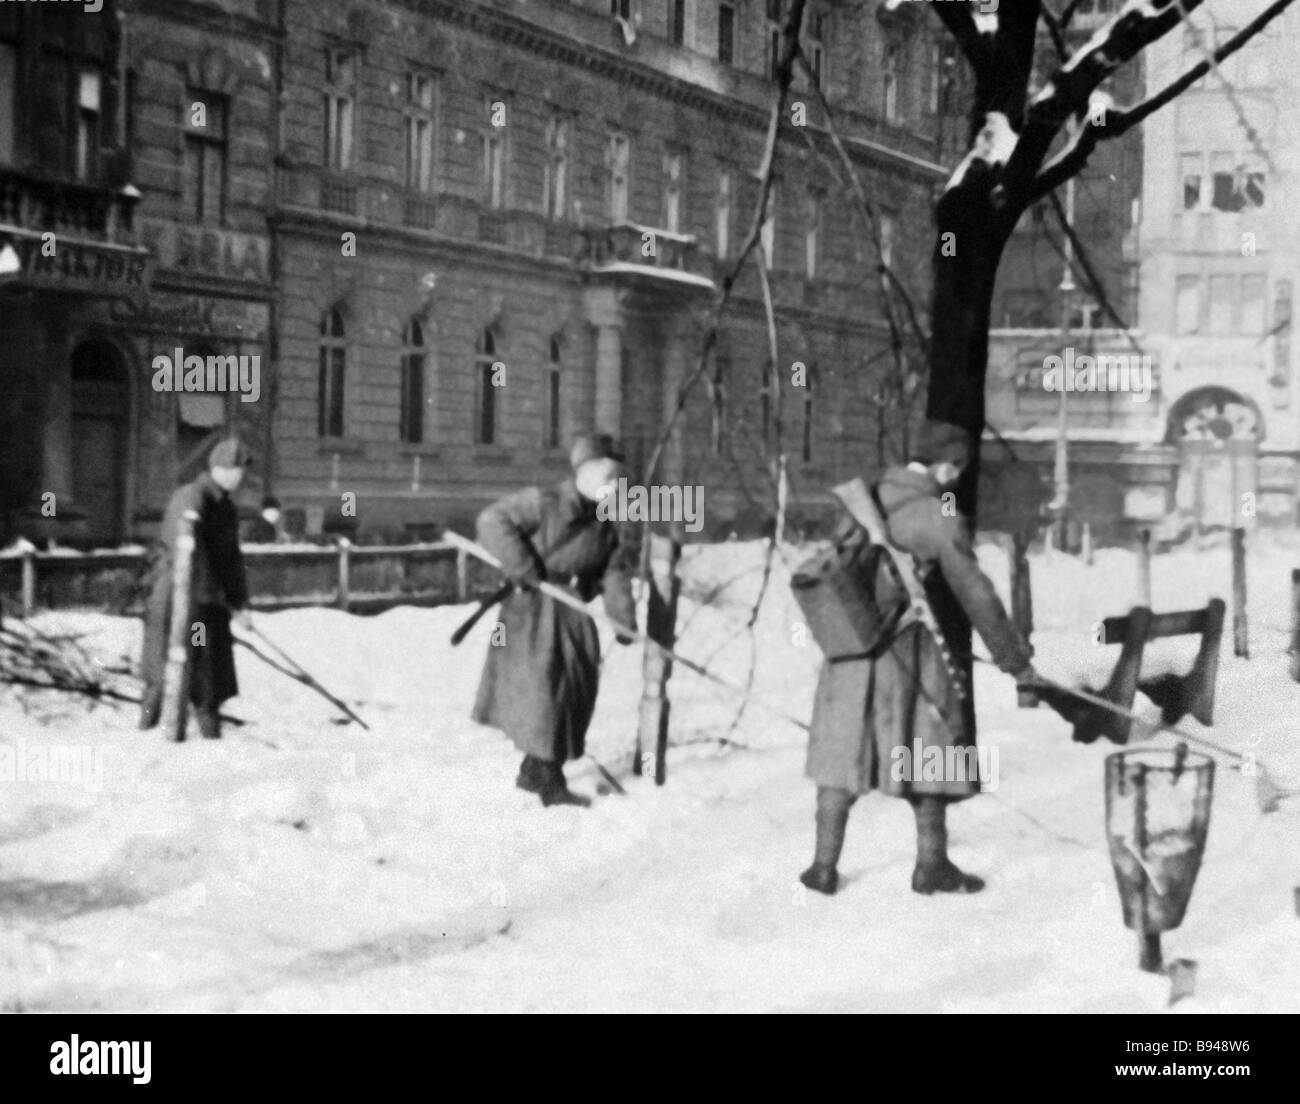 Soviet sappers defuse mines on the streets of Budapest - Stock Image